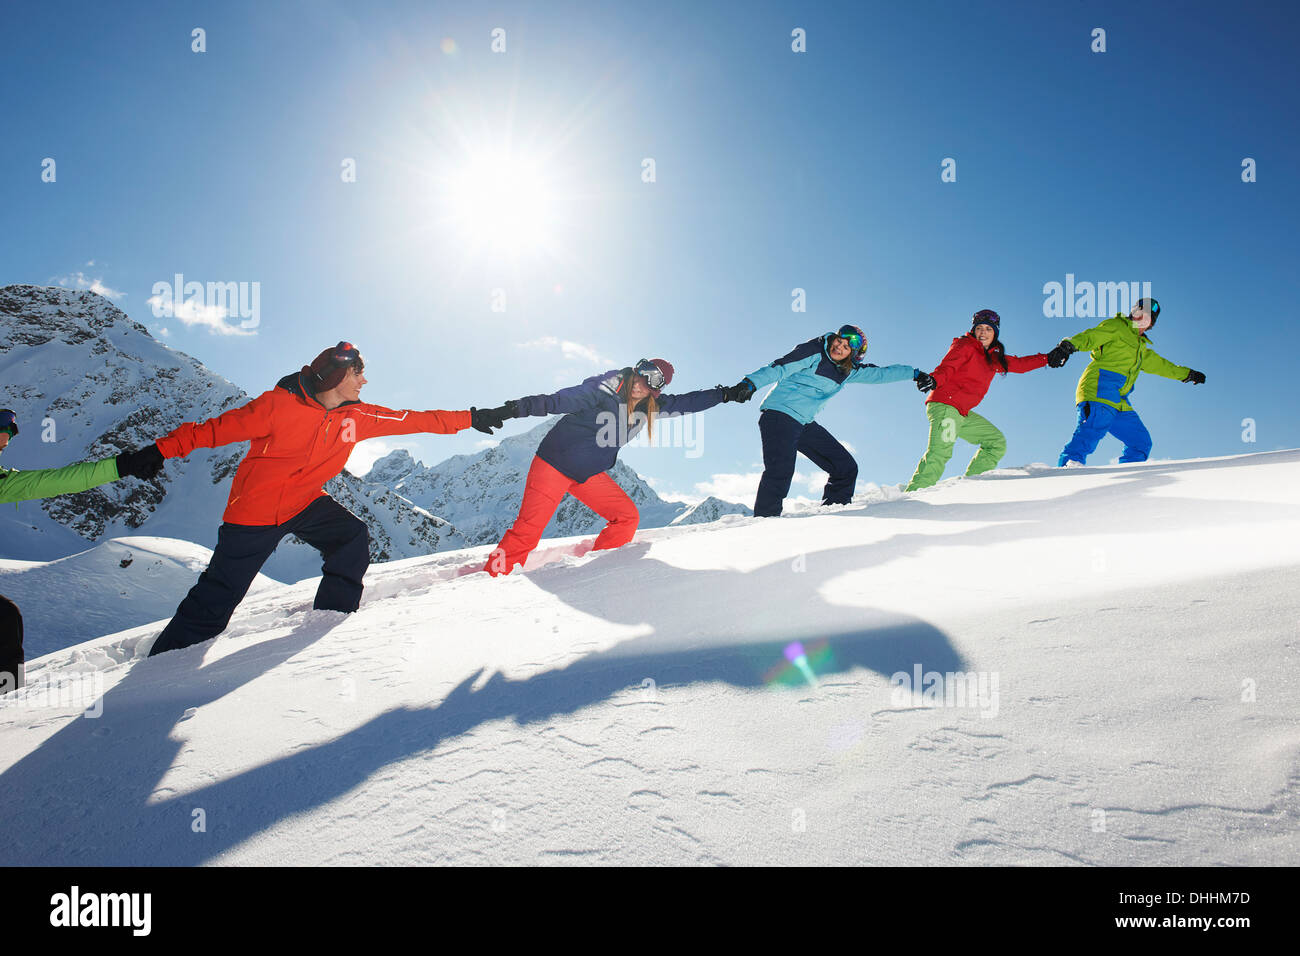 Friends pulling each other uphill in snow, Kuhtai, Austria - Stock Image